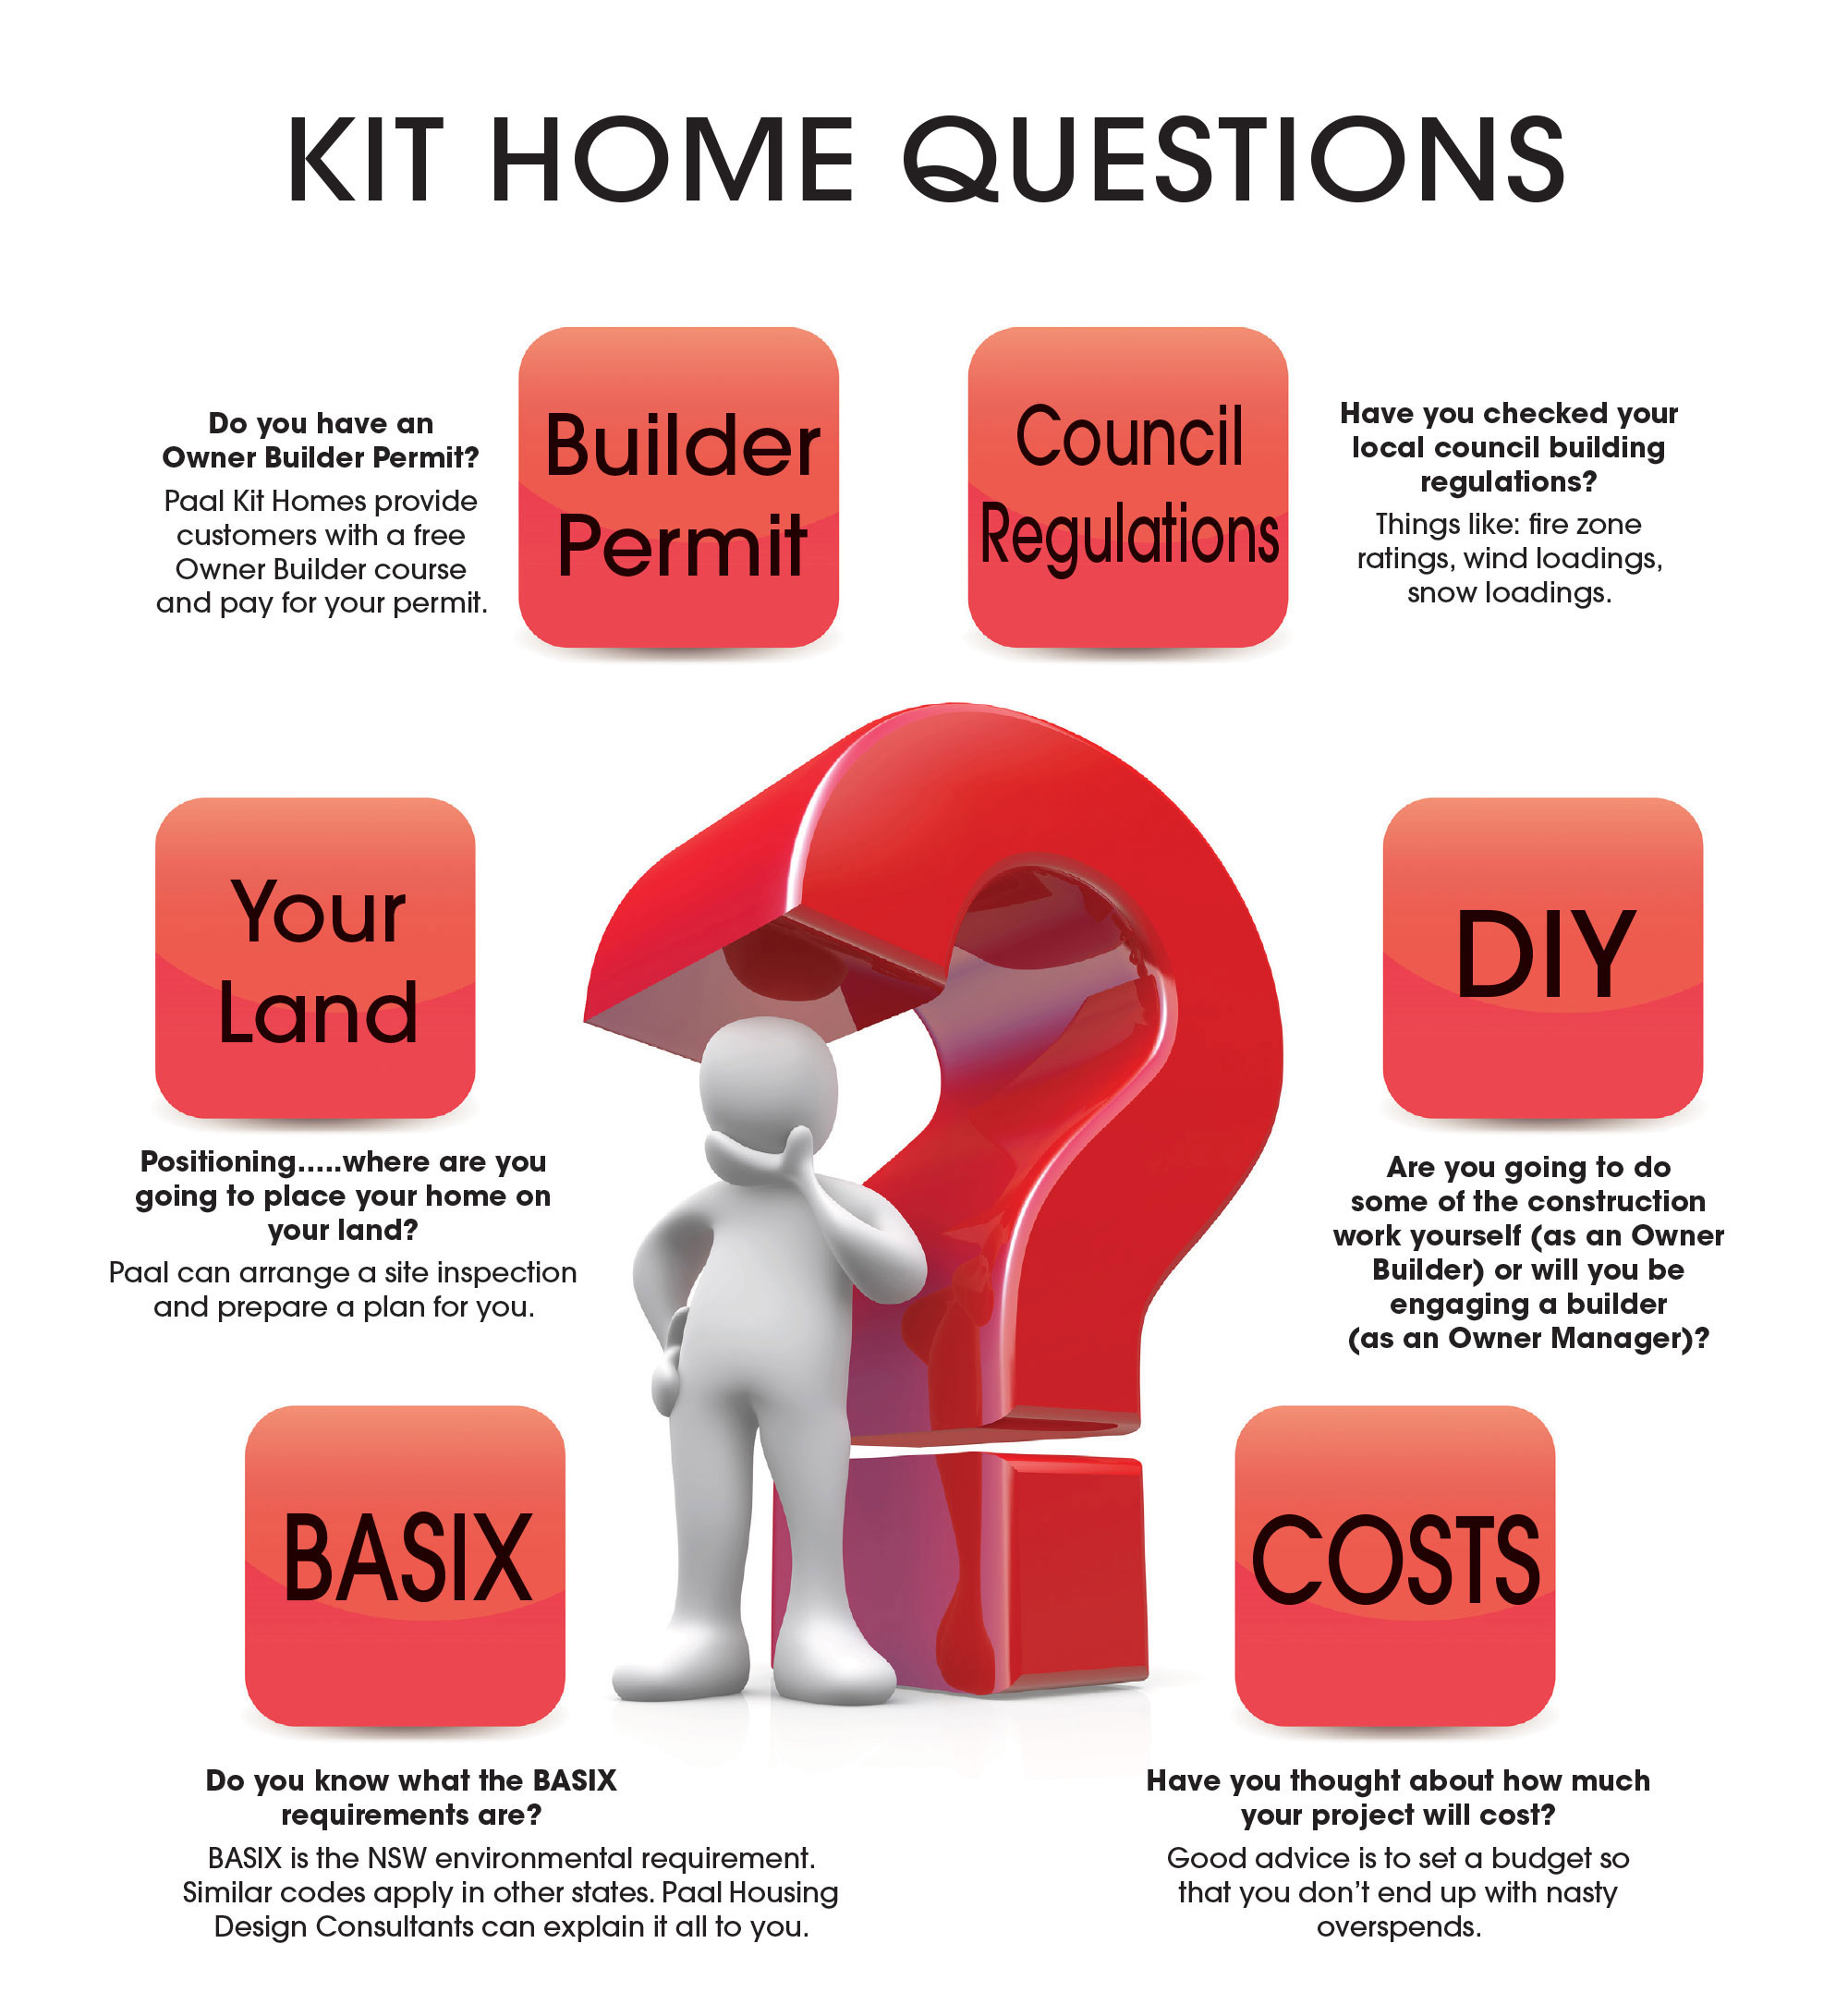 Commonly asked kit home questions. Have you checked your local council building regulations? Do you have an Owner Builder Permit? Positioning…..where are you going to place your home on your land? Do you know what the BASIX requirements are? Have you thought about how much your project will cost?